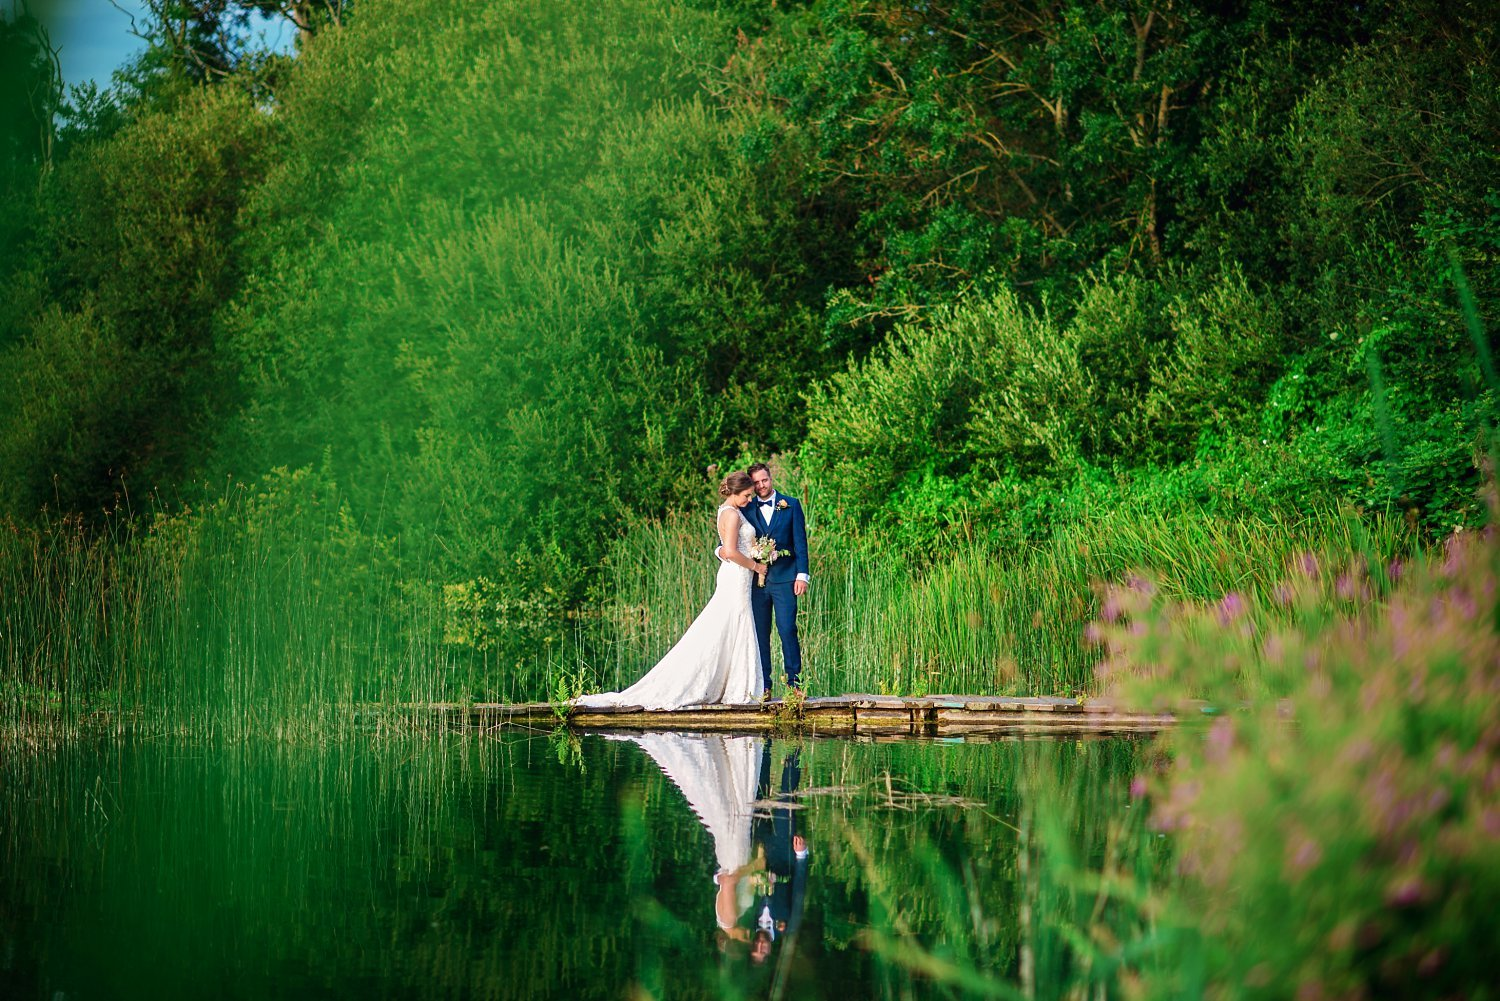 Duncton Mill Fishery Wedding - bride and groom. they are standing on the bridge